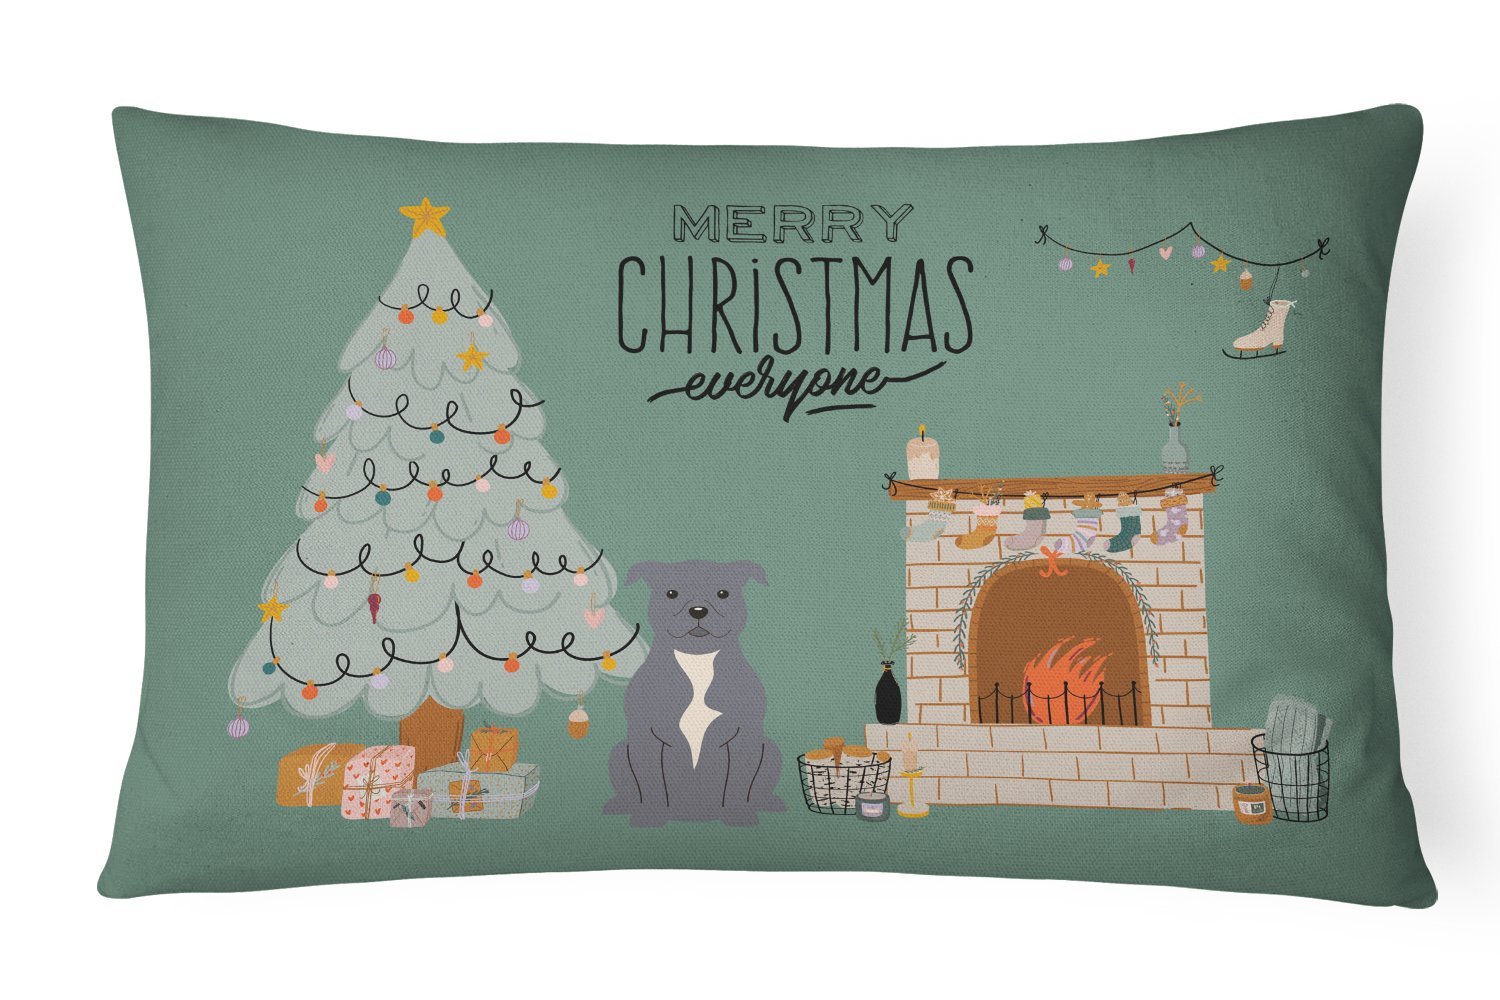 Blue Staffordshire Bull Terrier Christmas Everyone Canvas Fabric Decorative Pillow CK7609PW1216 by Caroline's Treasures